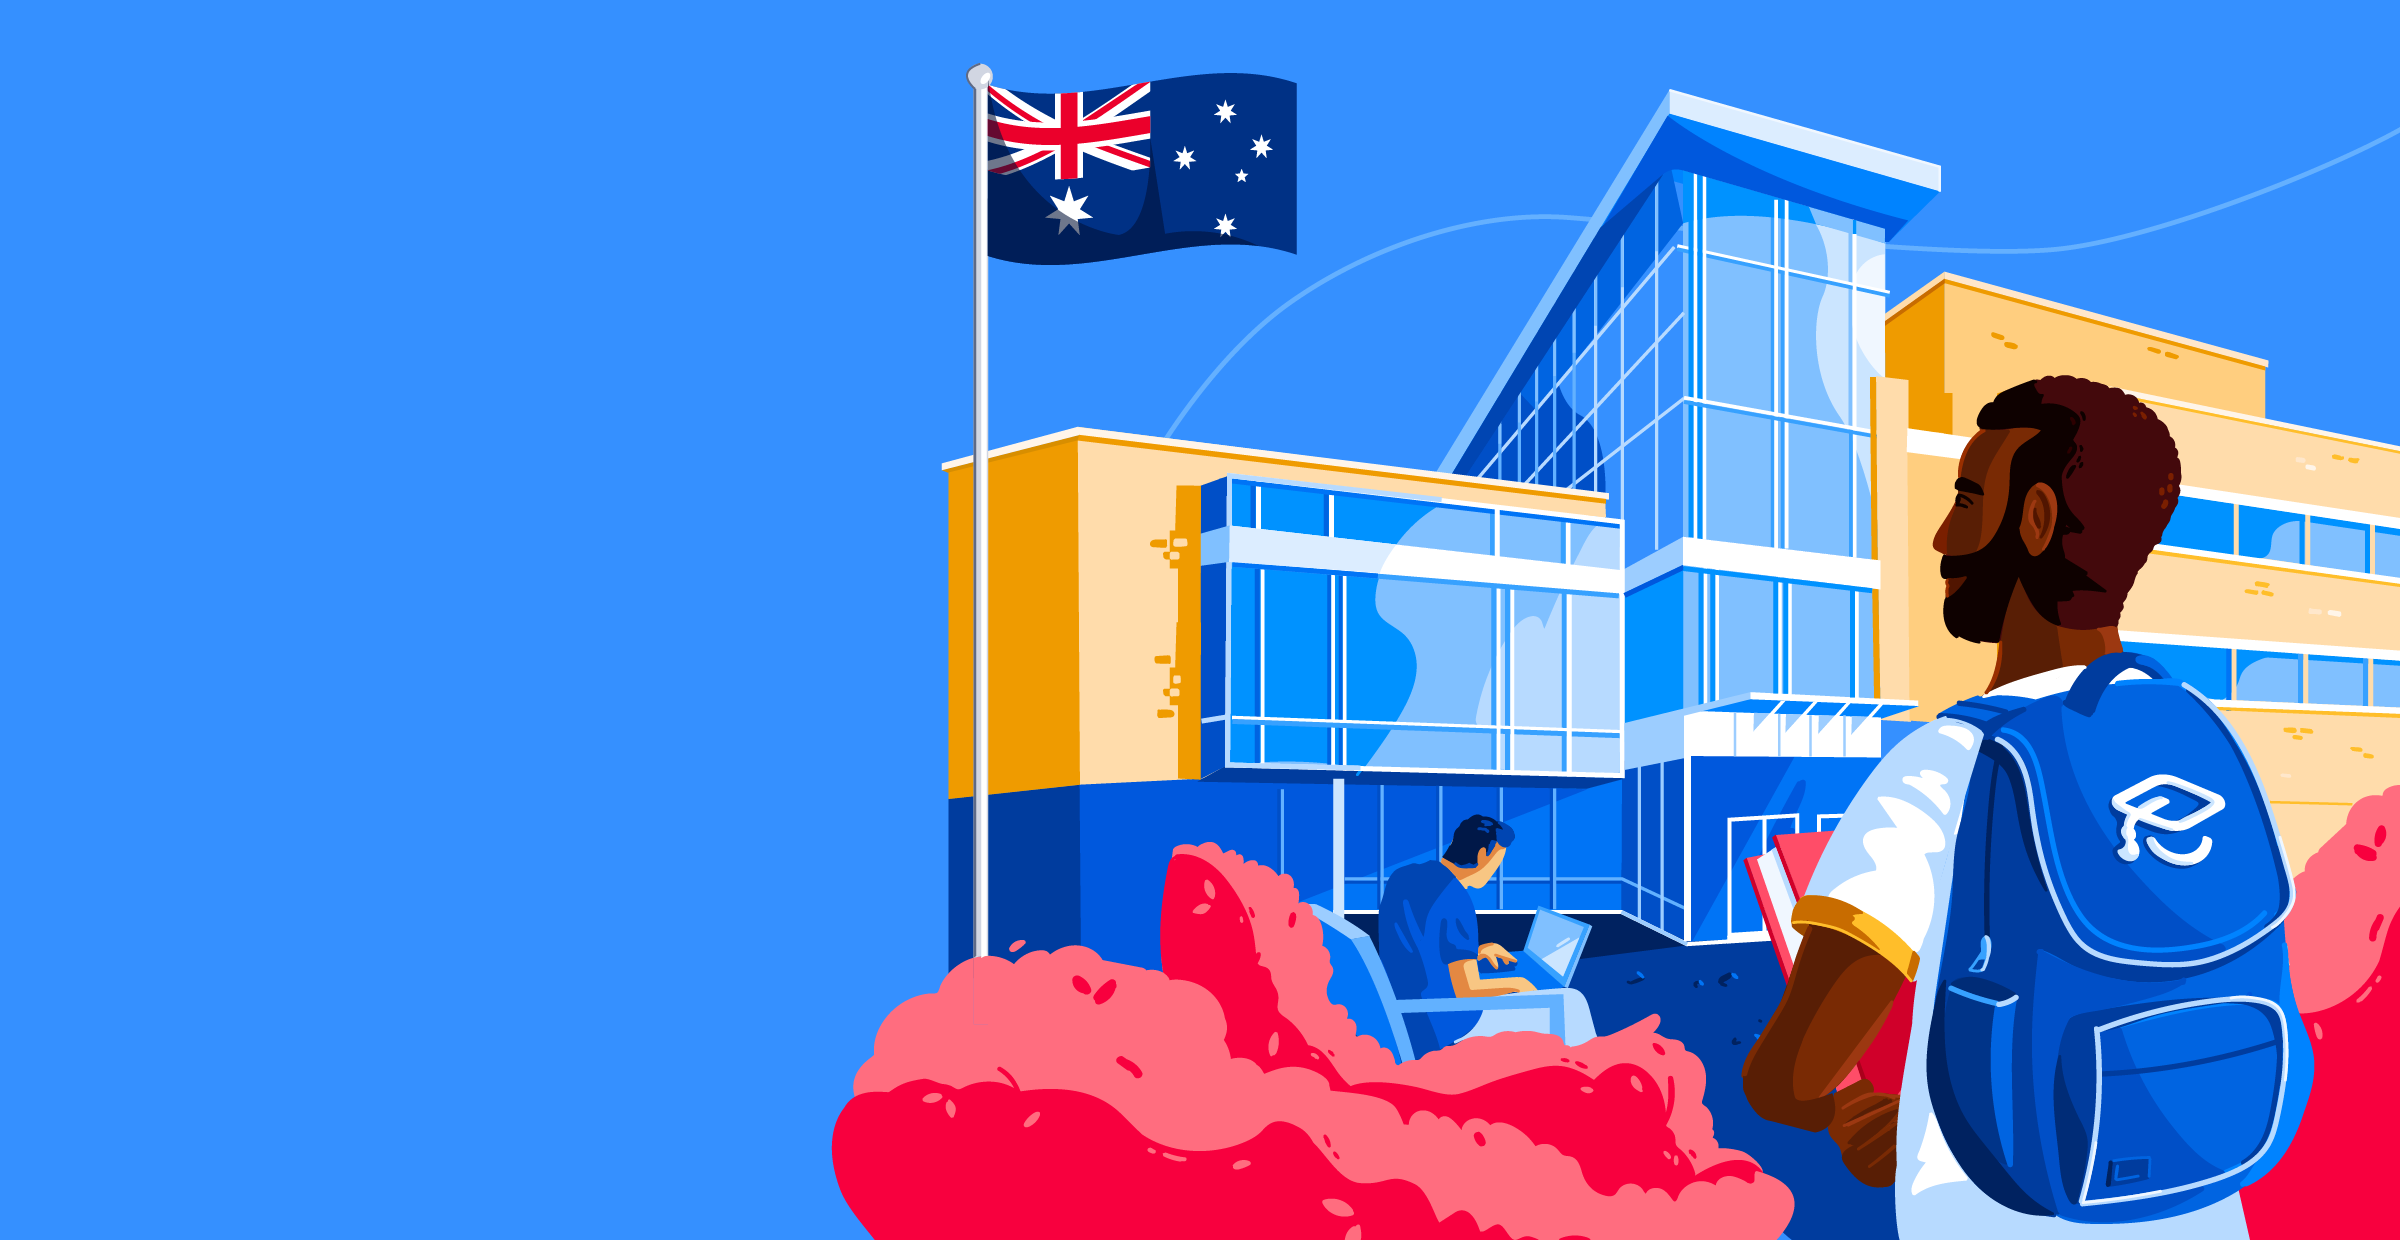 Illustration of male student in front of school with Australian flag